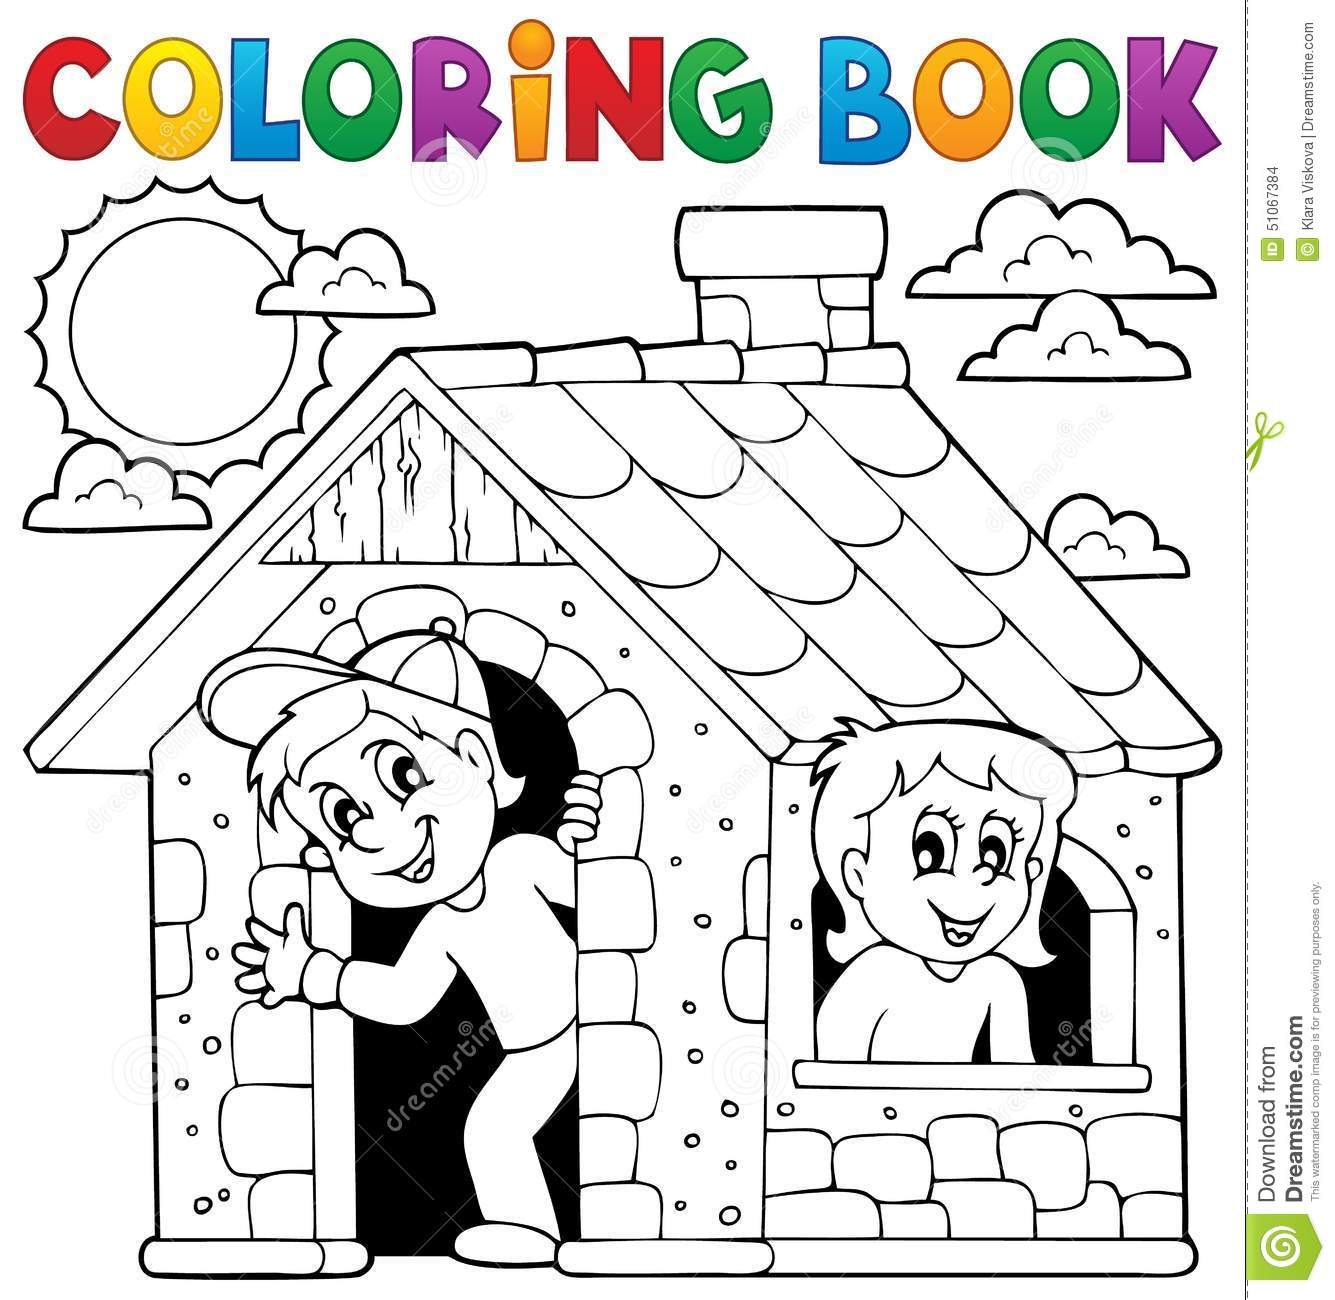 Coloring Book Children Playing In House